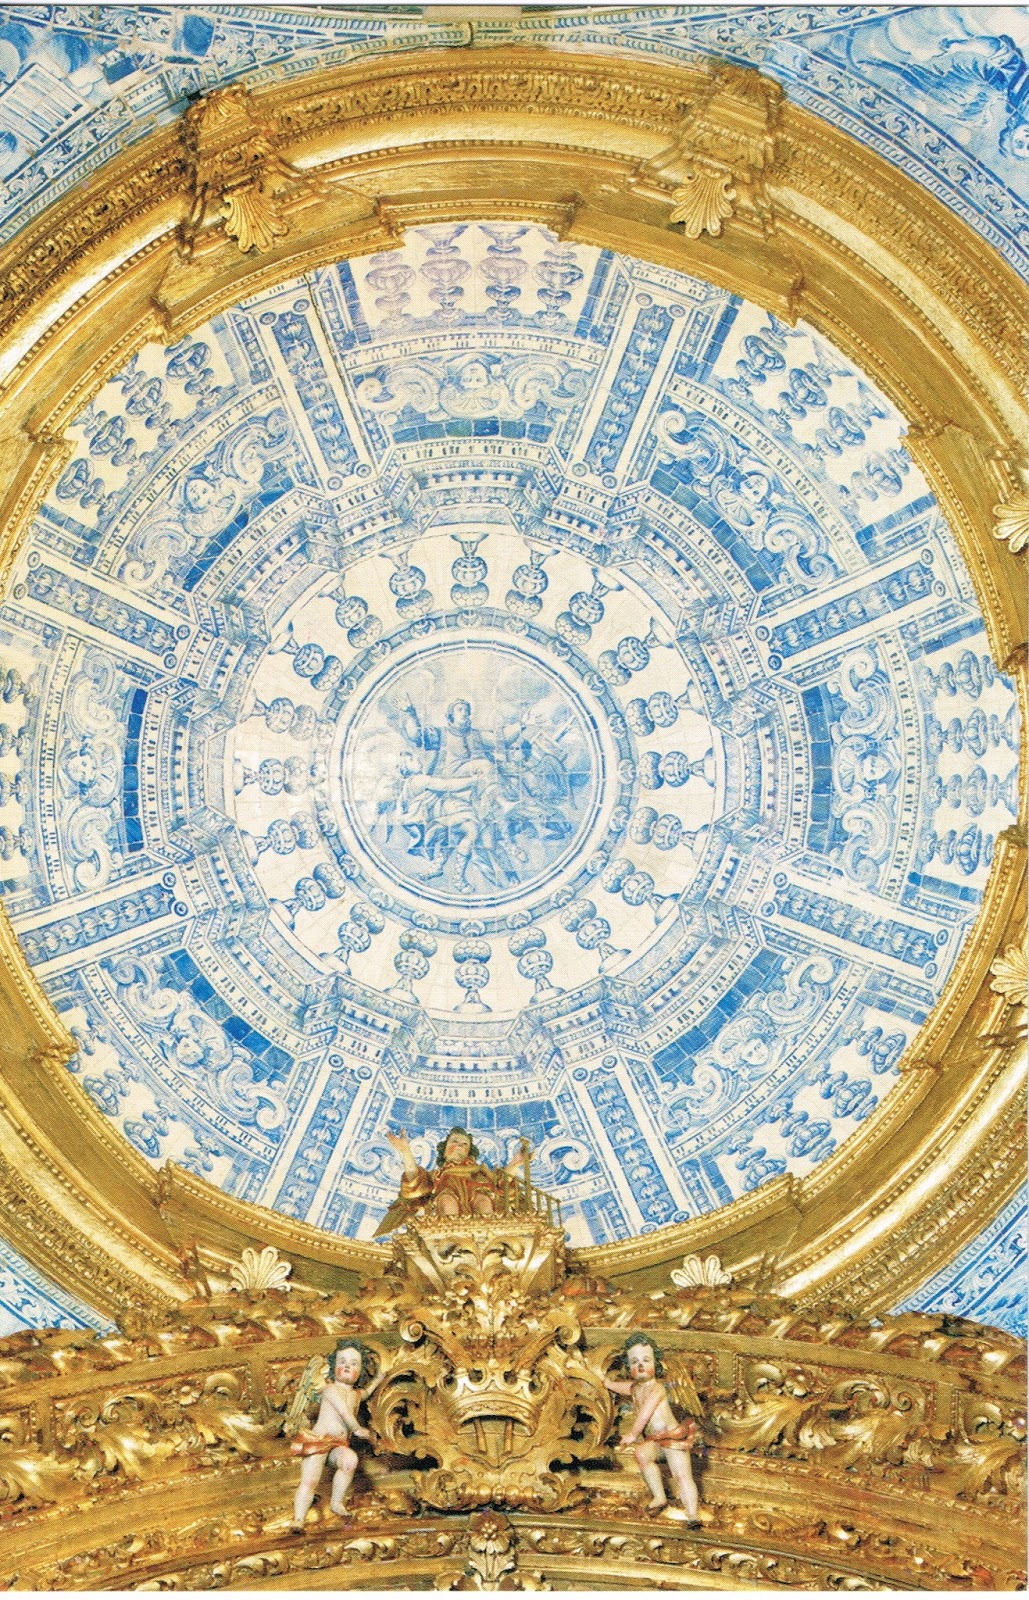 100 baroque ceiling tile grenoble sophiesfire comluxurious gallery of baroque ceiling tile ivan grohar adele in slovenia church so loureno portugal lost in past doublecrazyfo Gallery